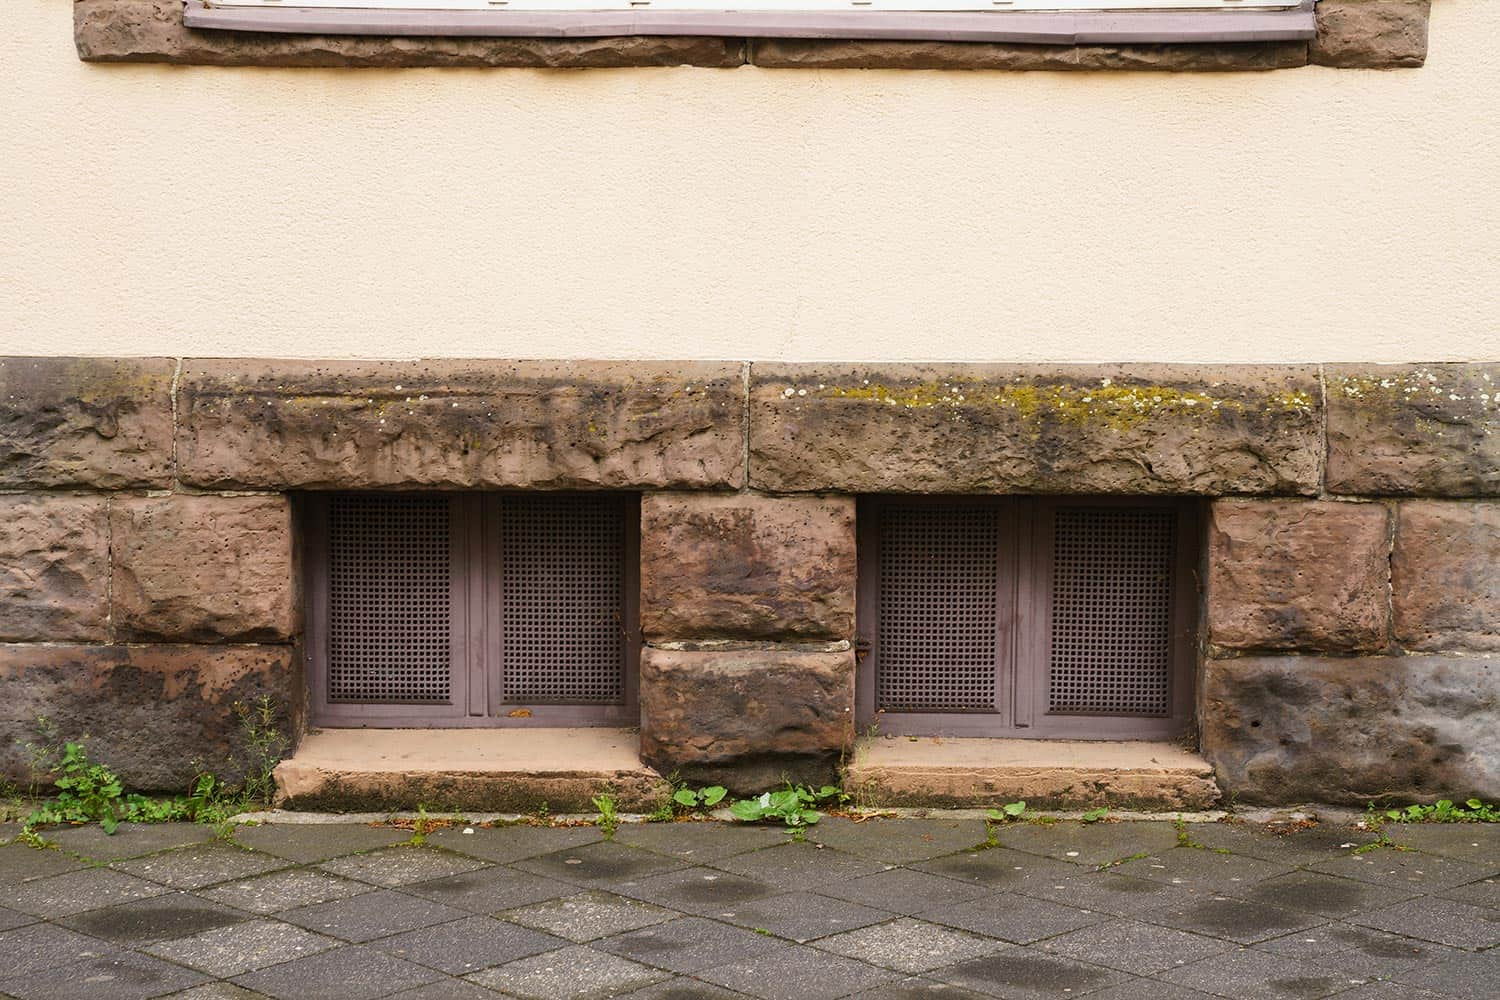 Two basement windows in a stone wall covered with metal mesh